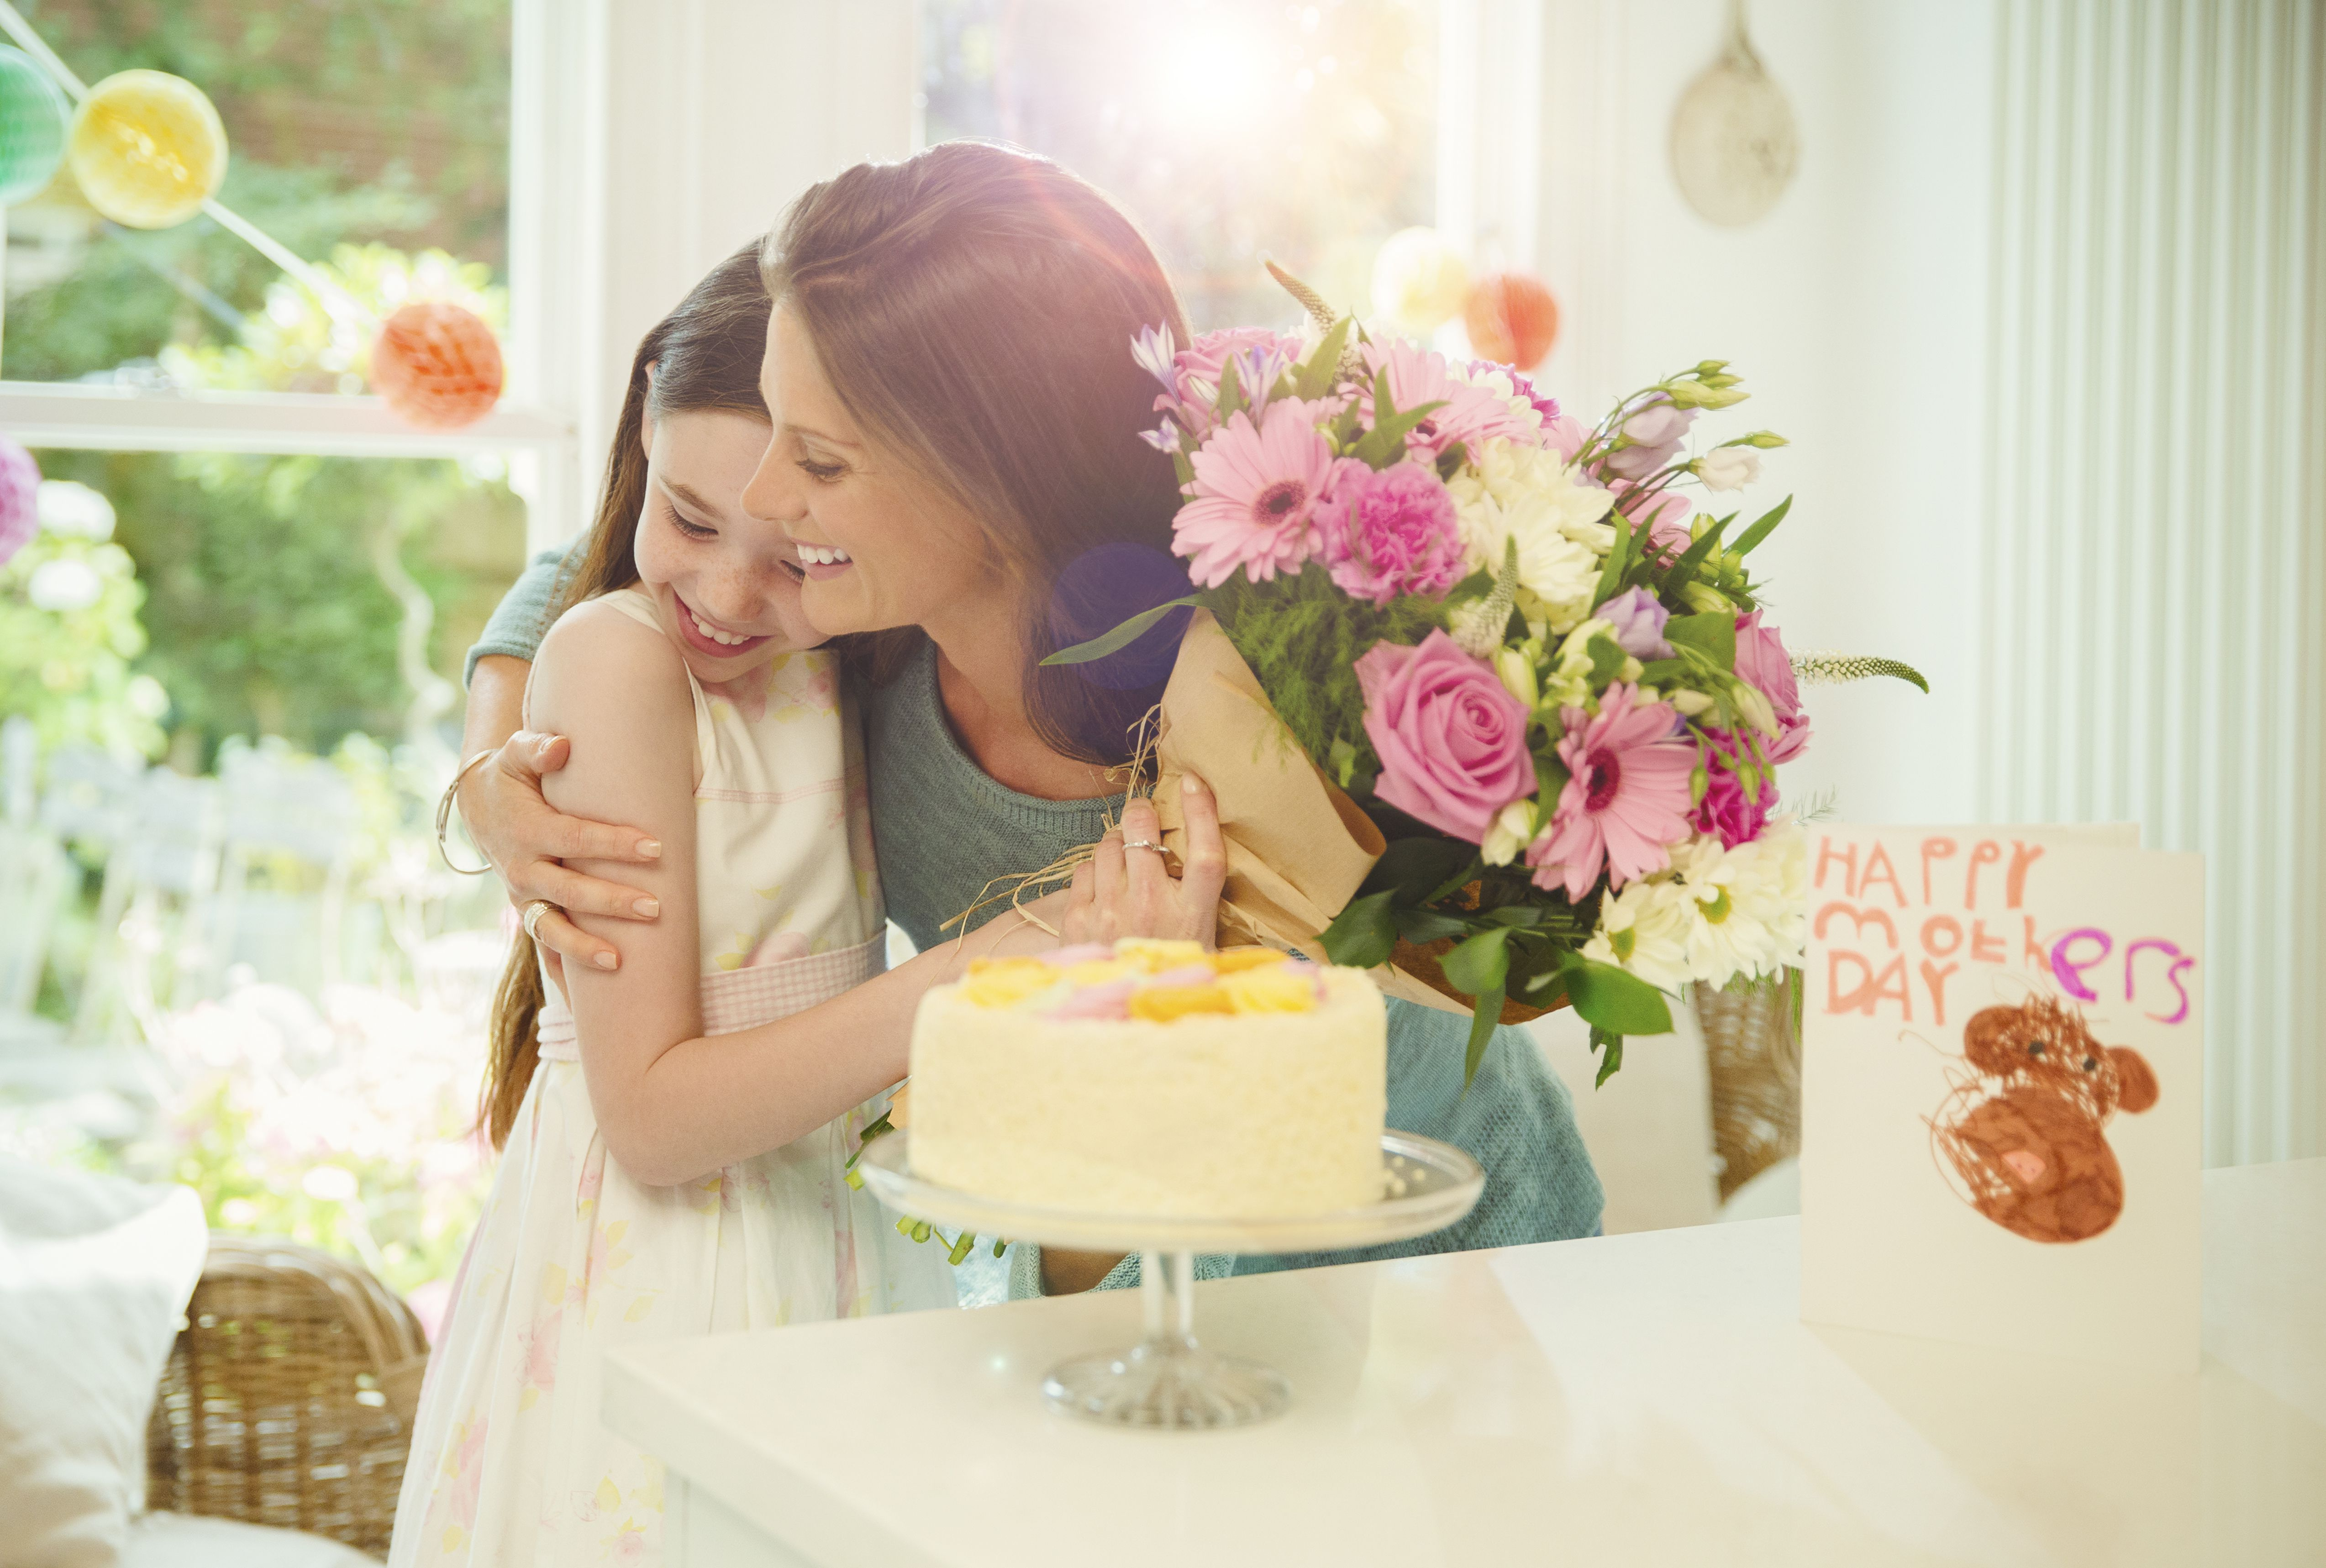 9 Places to Find Happy Mother's Day Poems